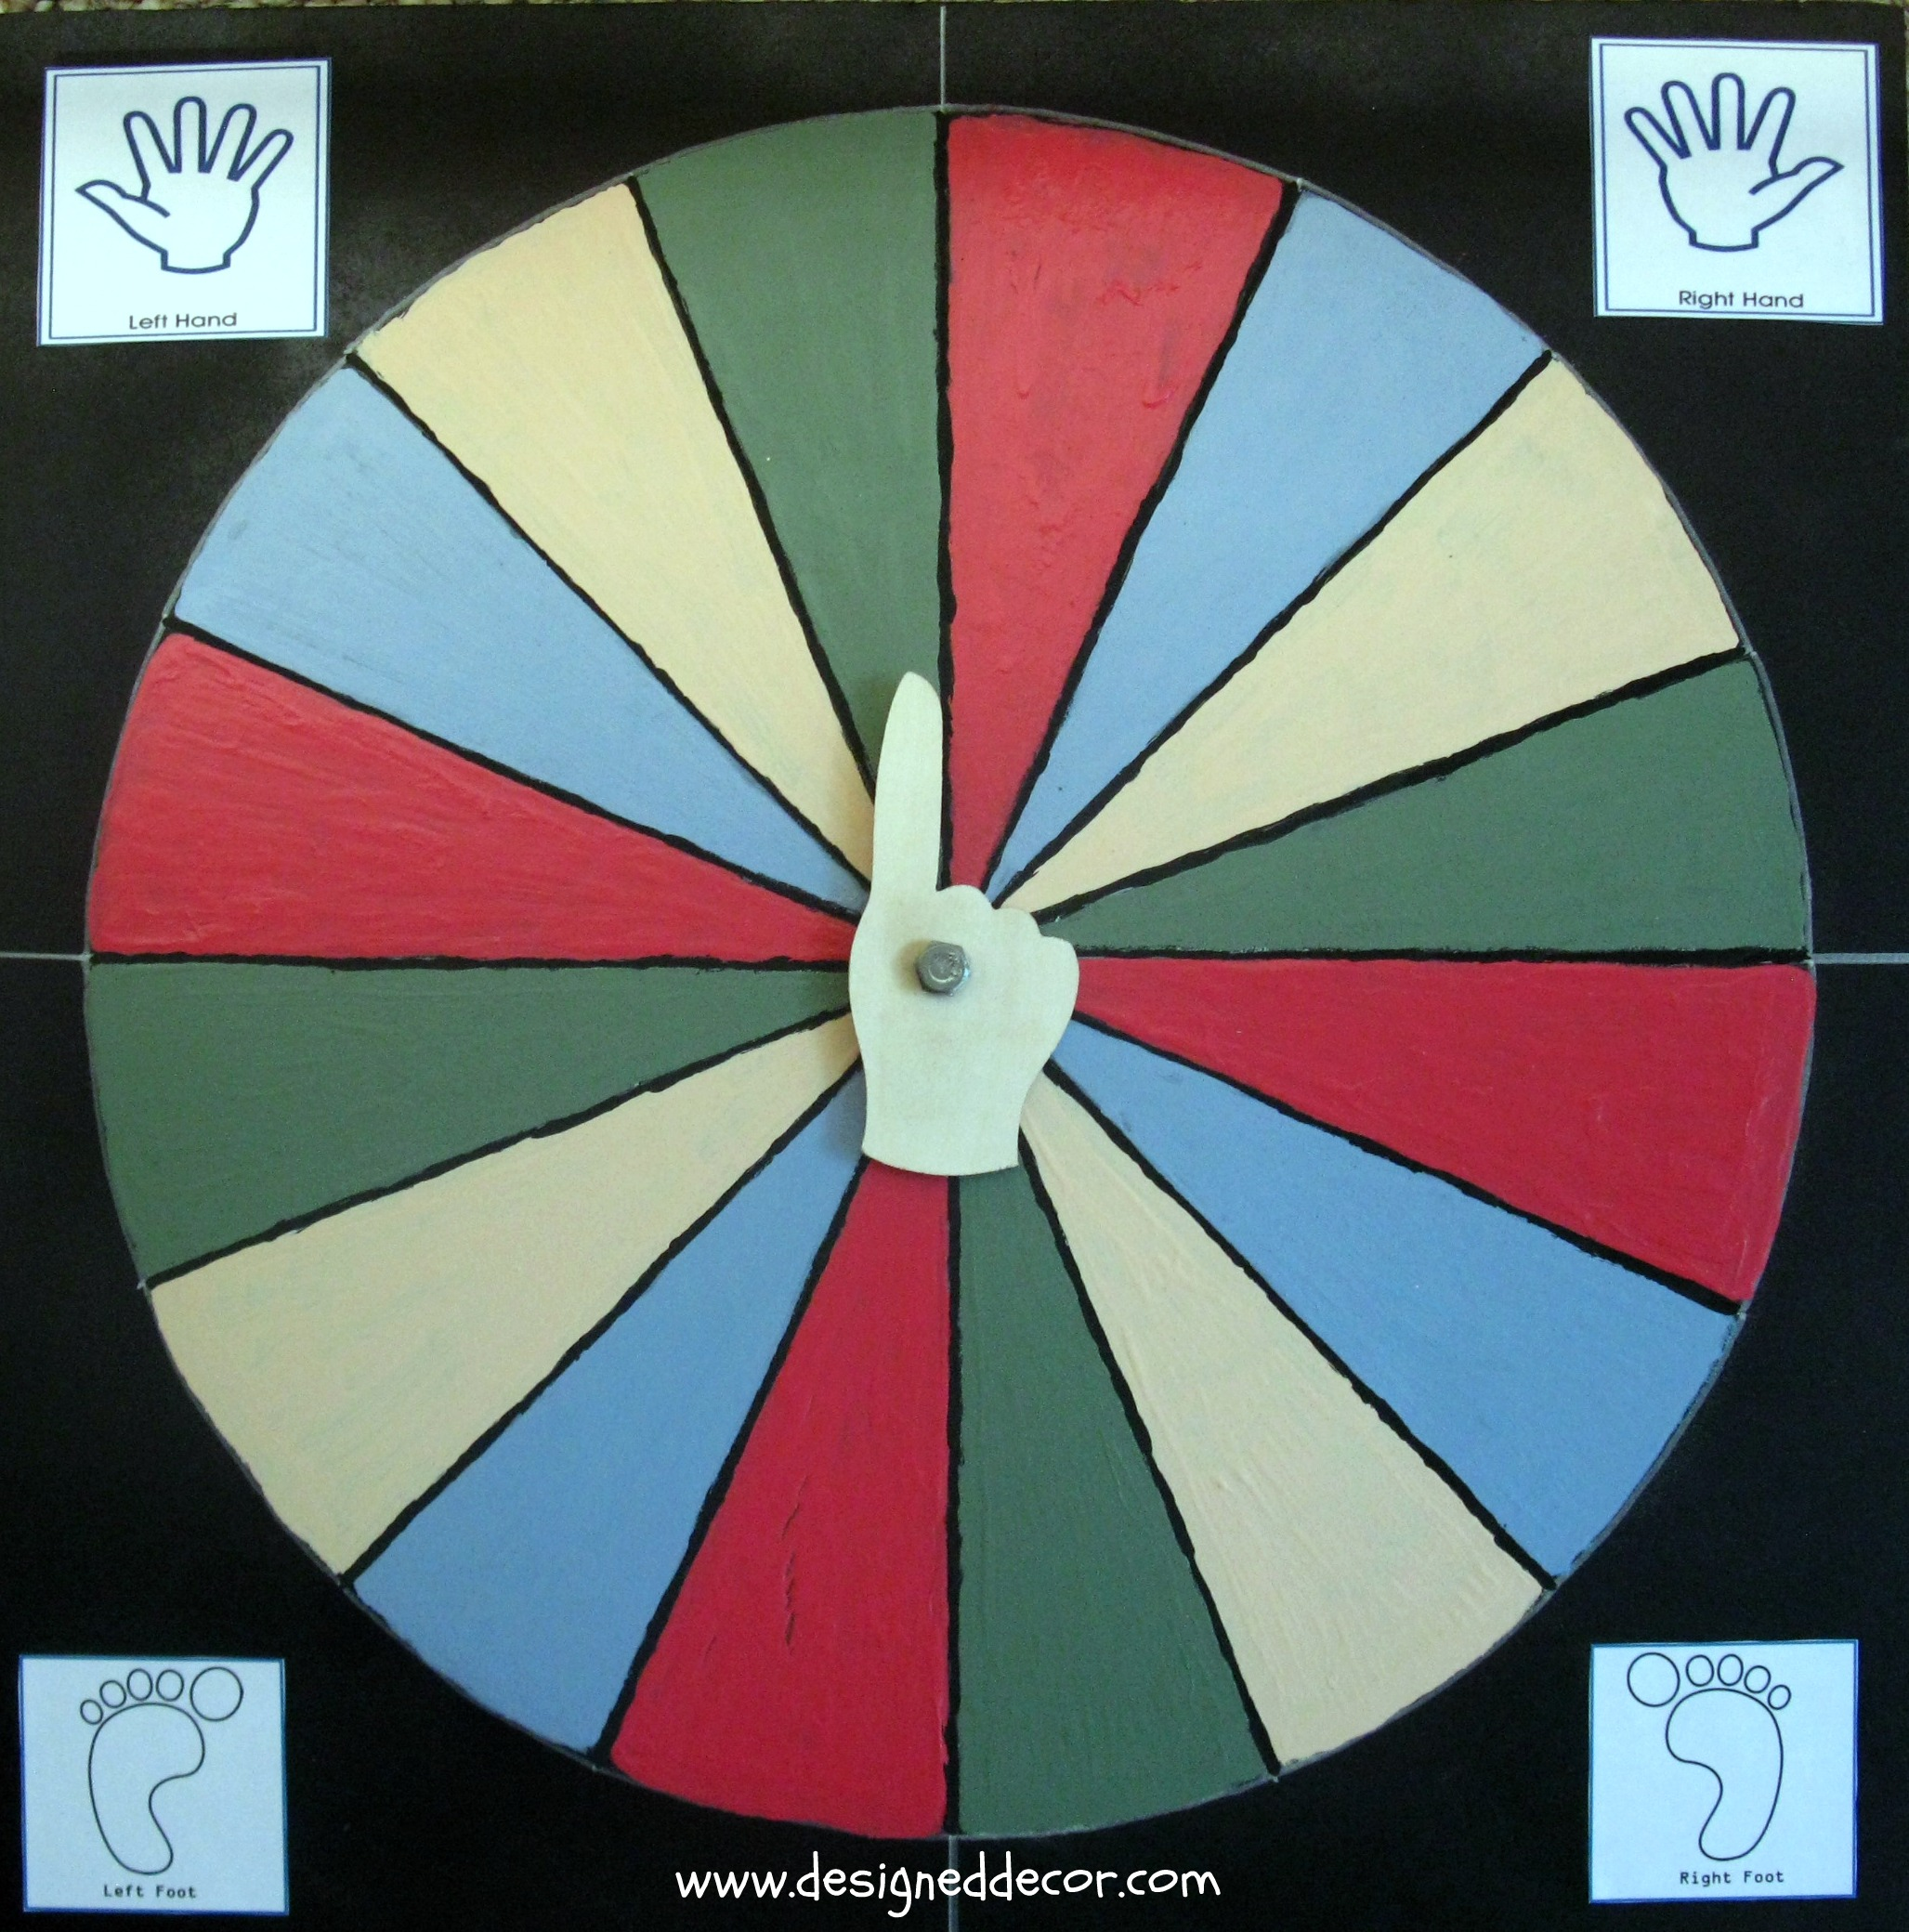 photo regarding Twister Spinner Printable known as D.I.Y. Twister Video game - Intended Decor